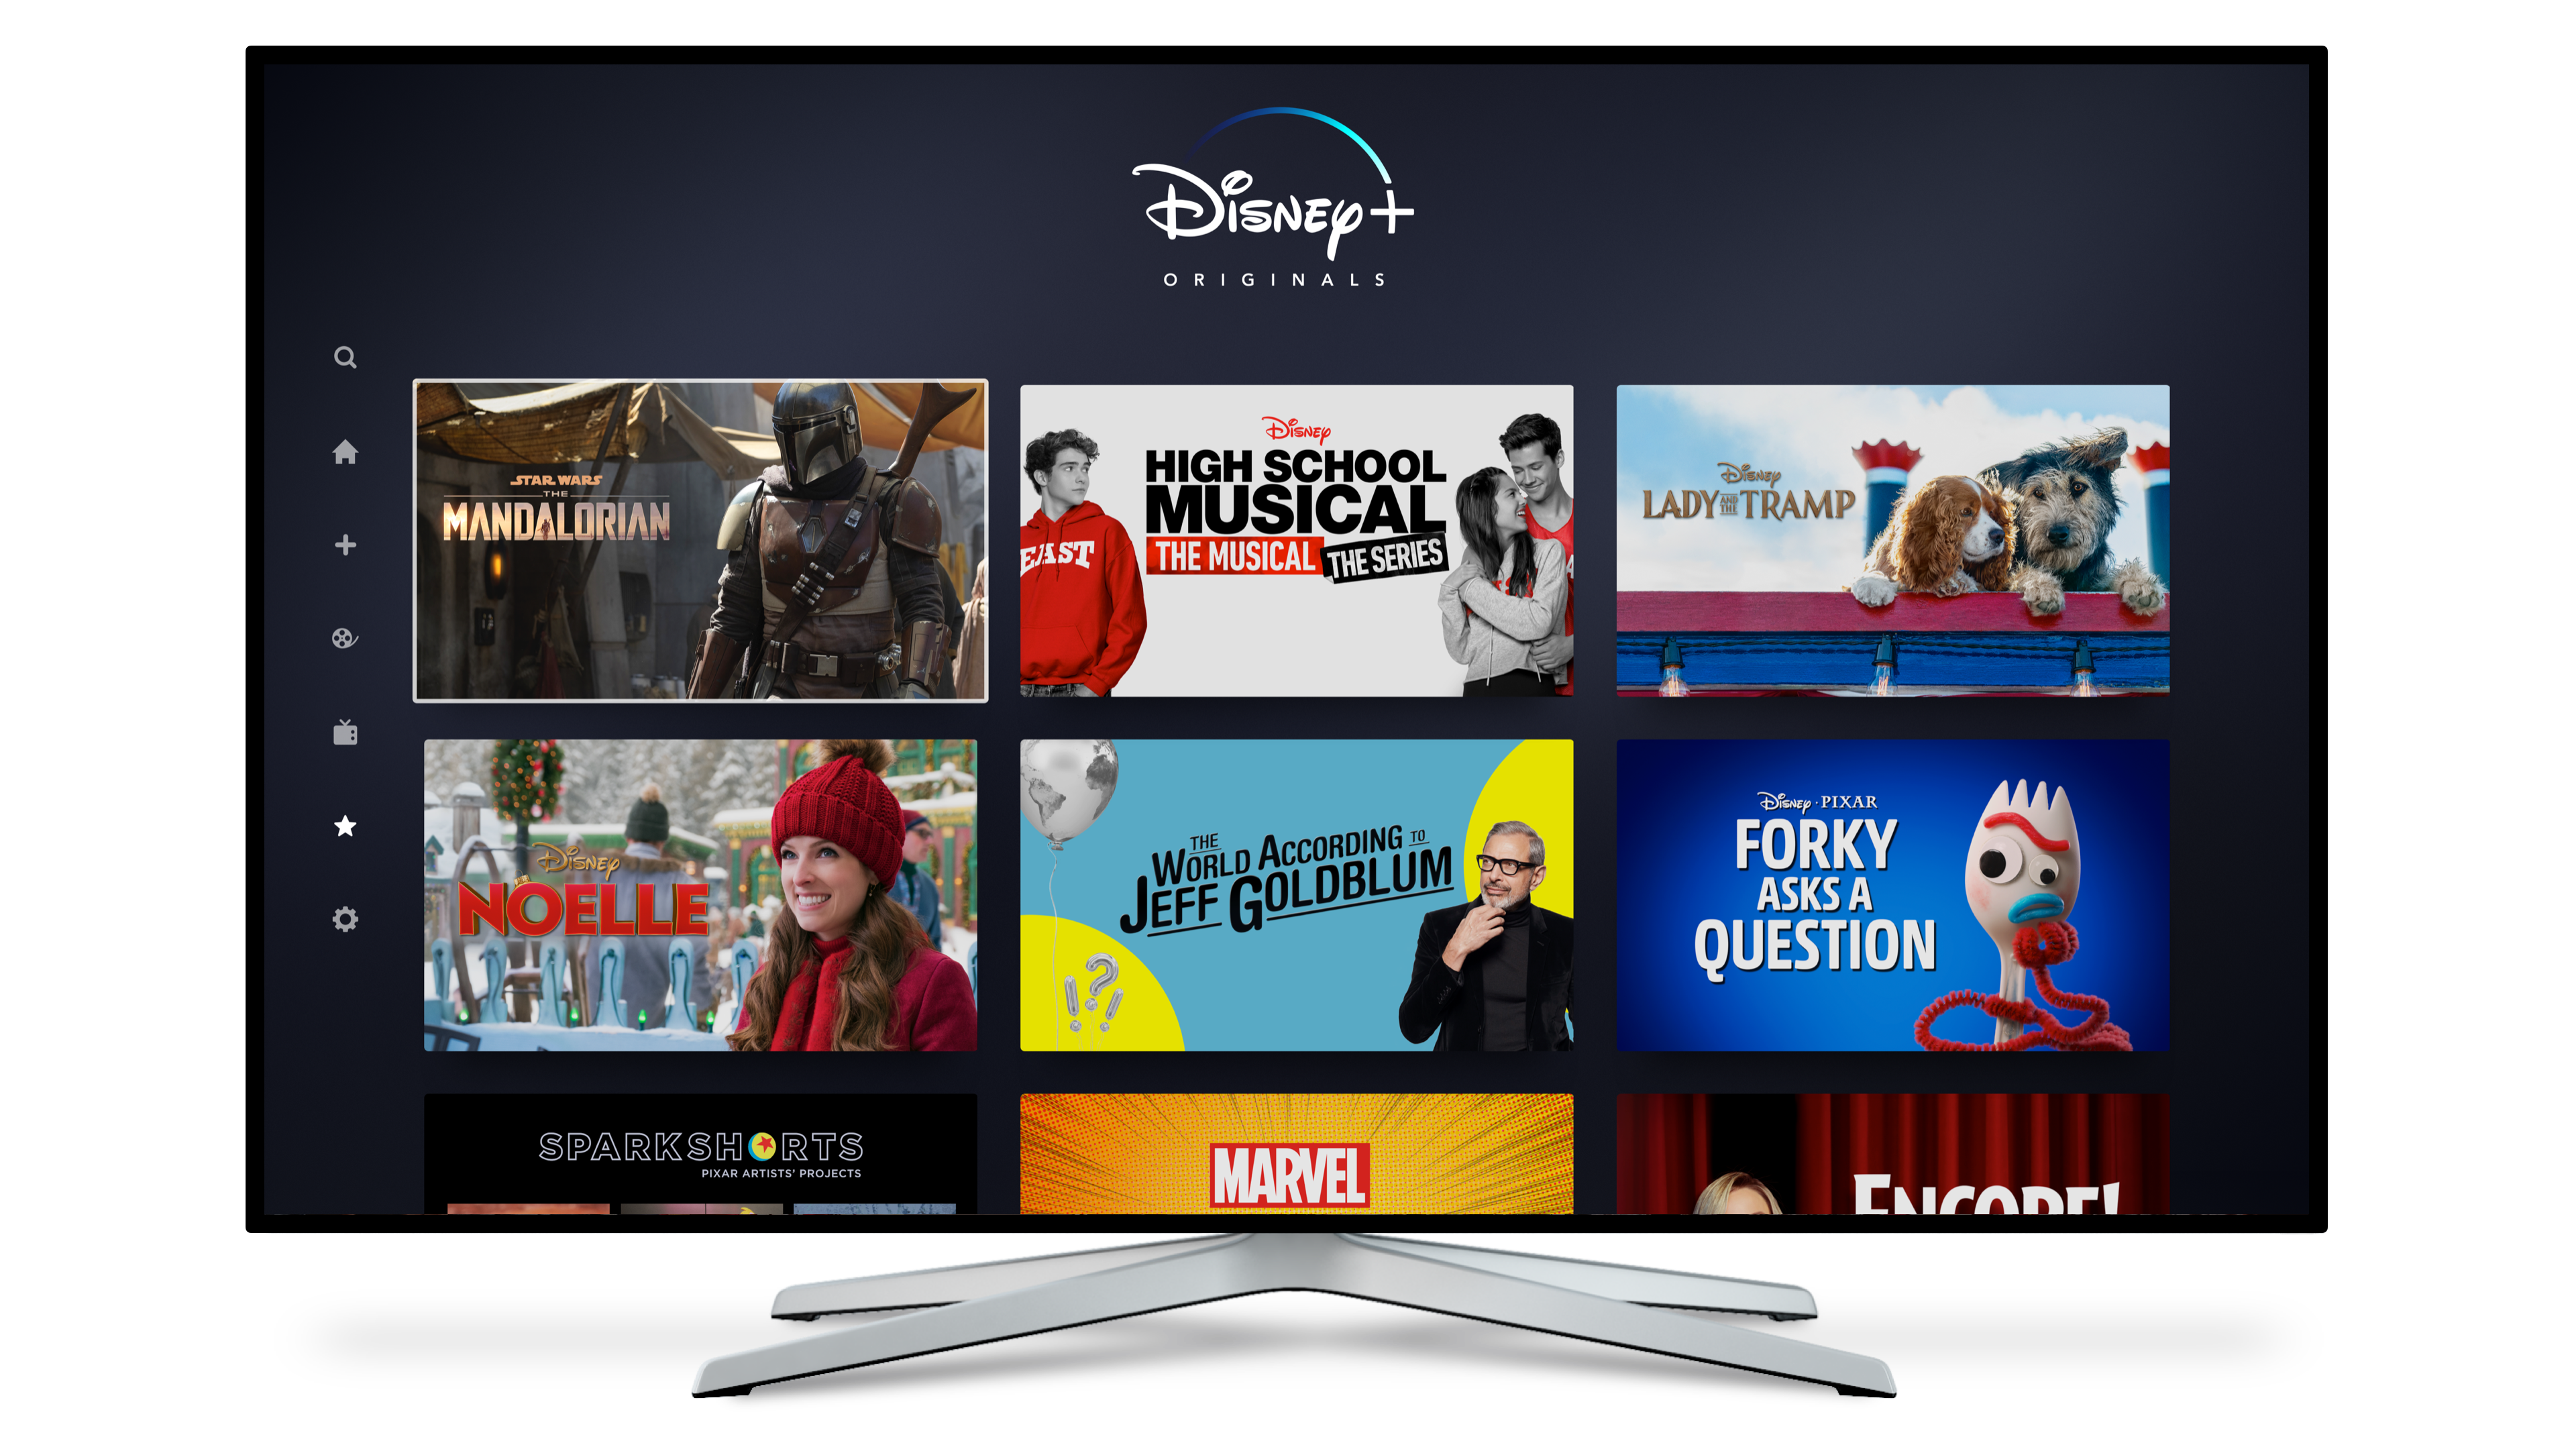 A look at the streaming menu for Disney Plus.